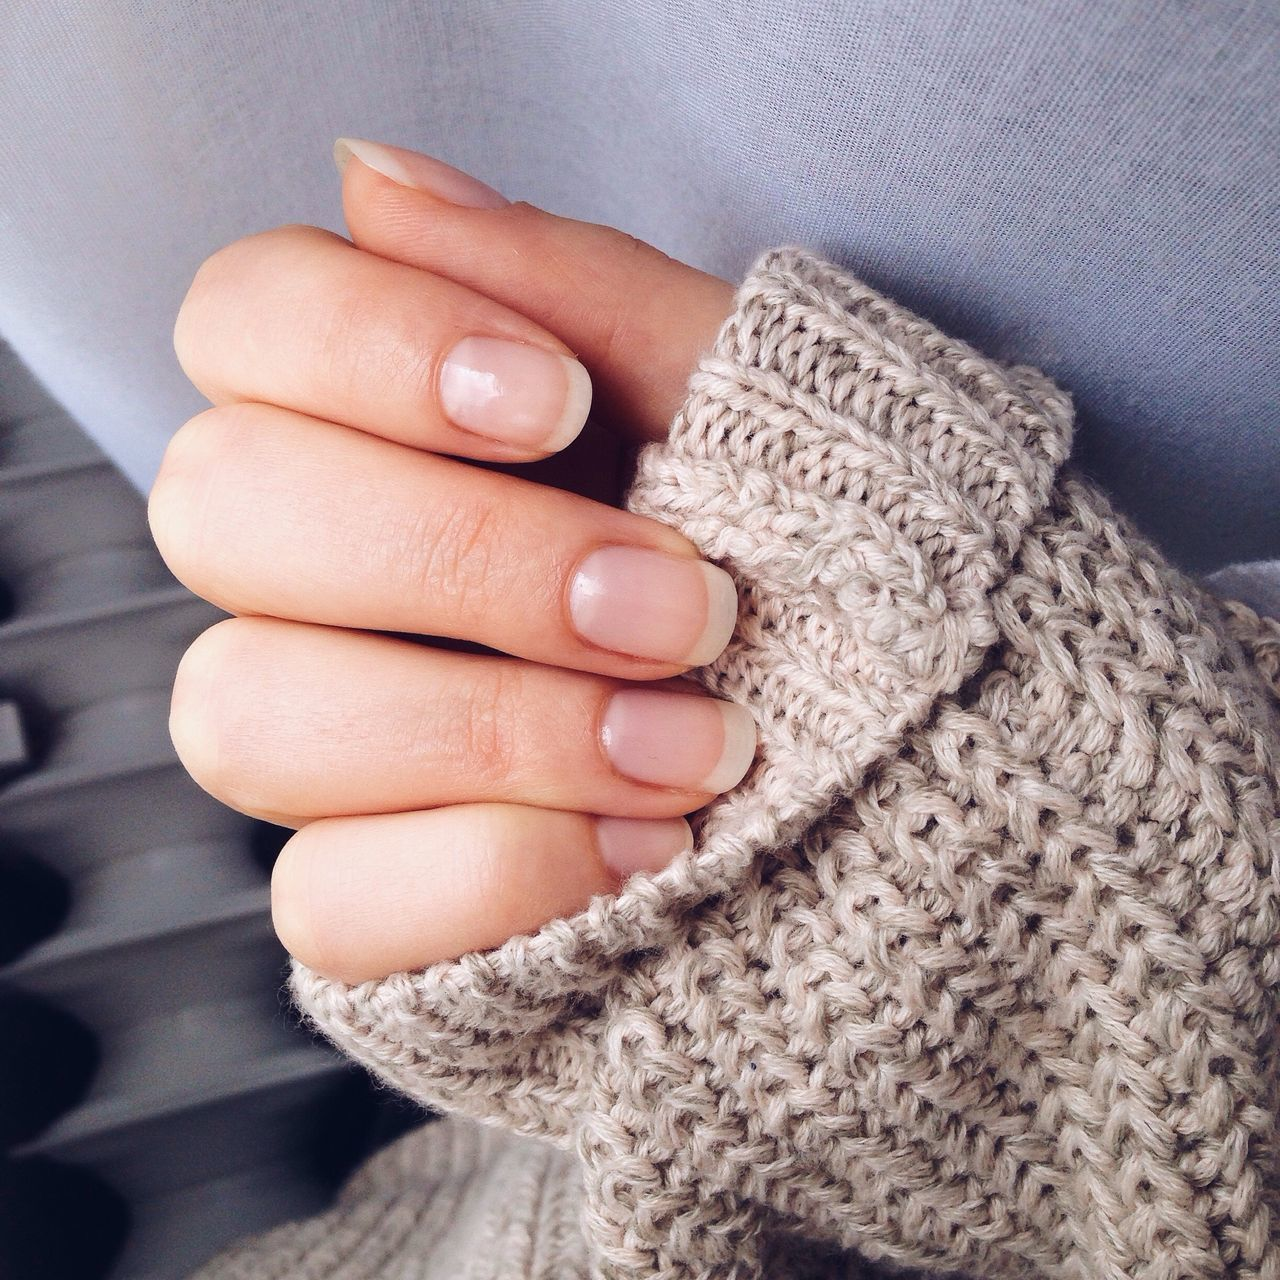 Hand Fingers Nails Long Nails Manicure! French Minimalism Sweaterweather Sweater Details Nudelife Nudenails Simplicity